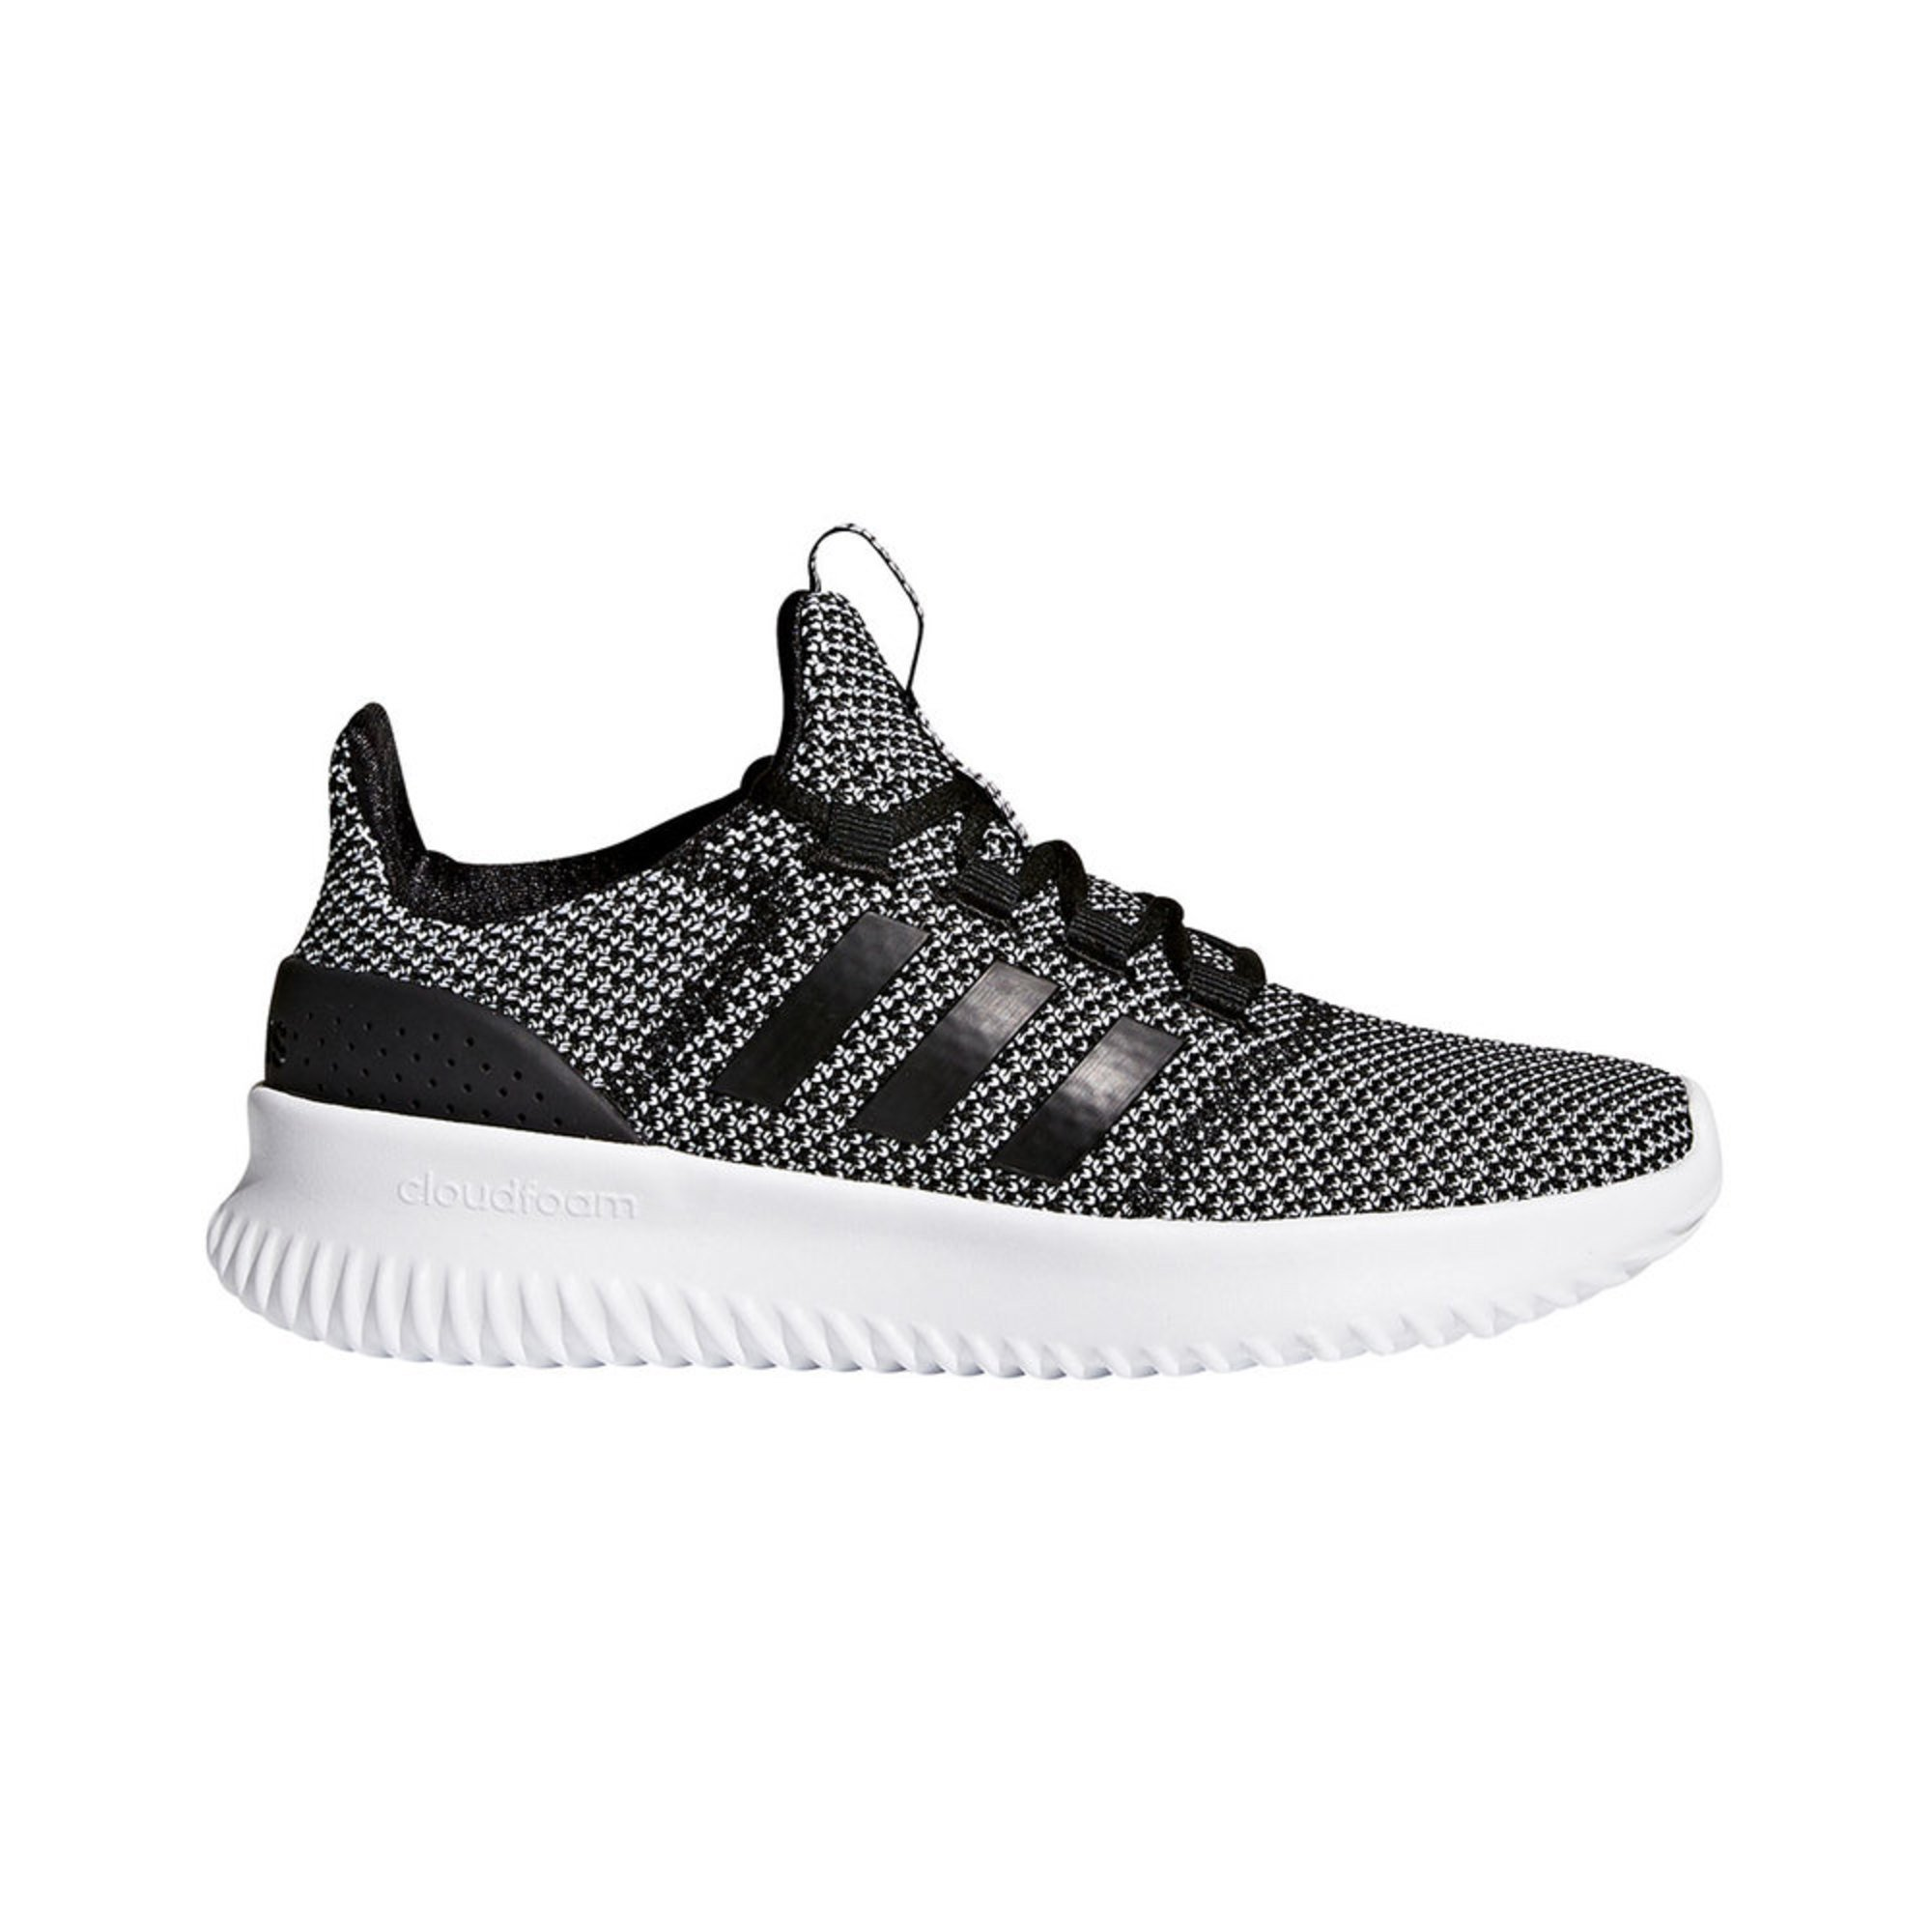 low priced 62f71 5ee64 adidas. Adidas Boys Cloudfoam Ultimate Running Shoe ...